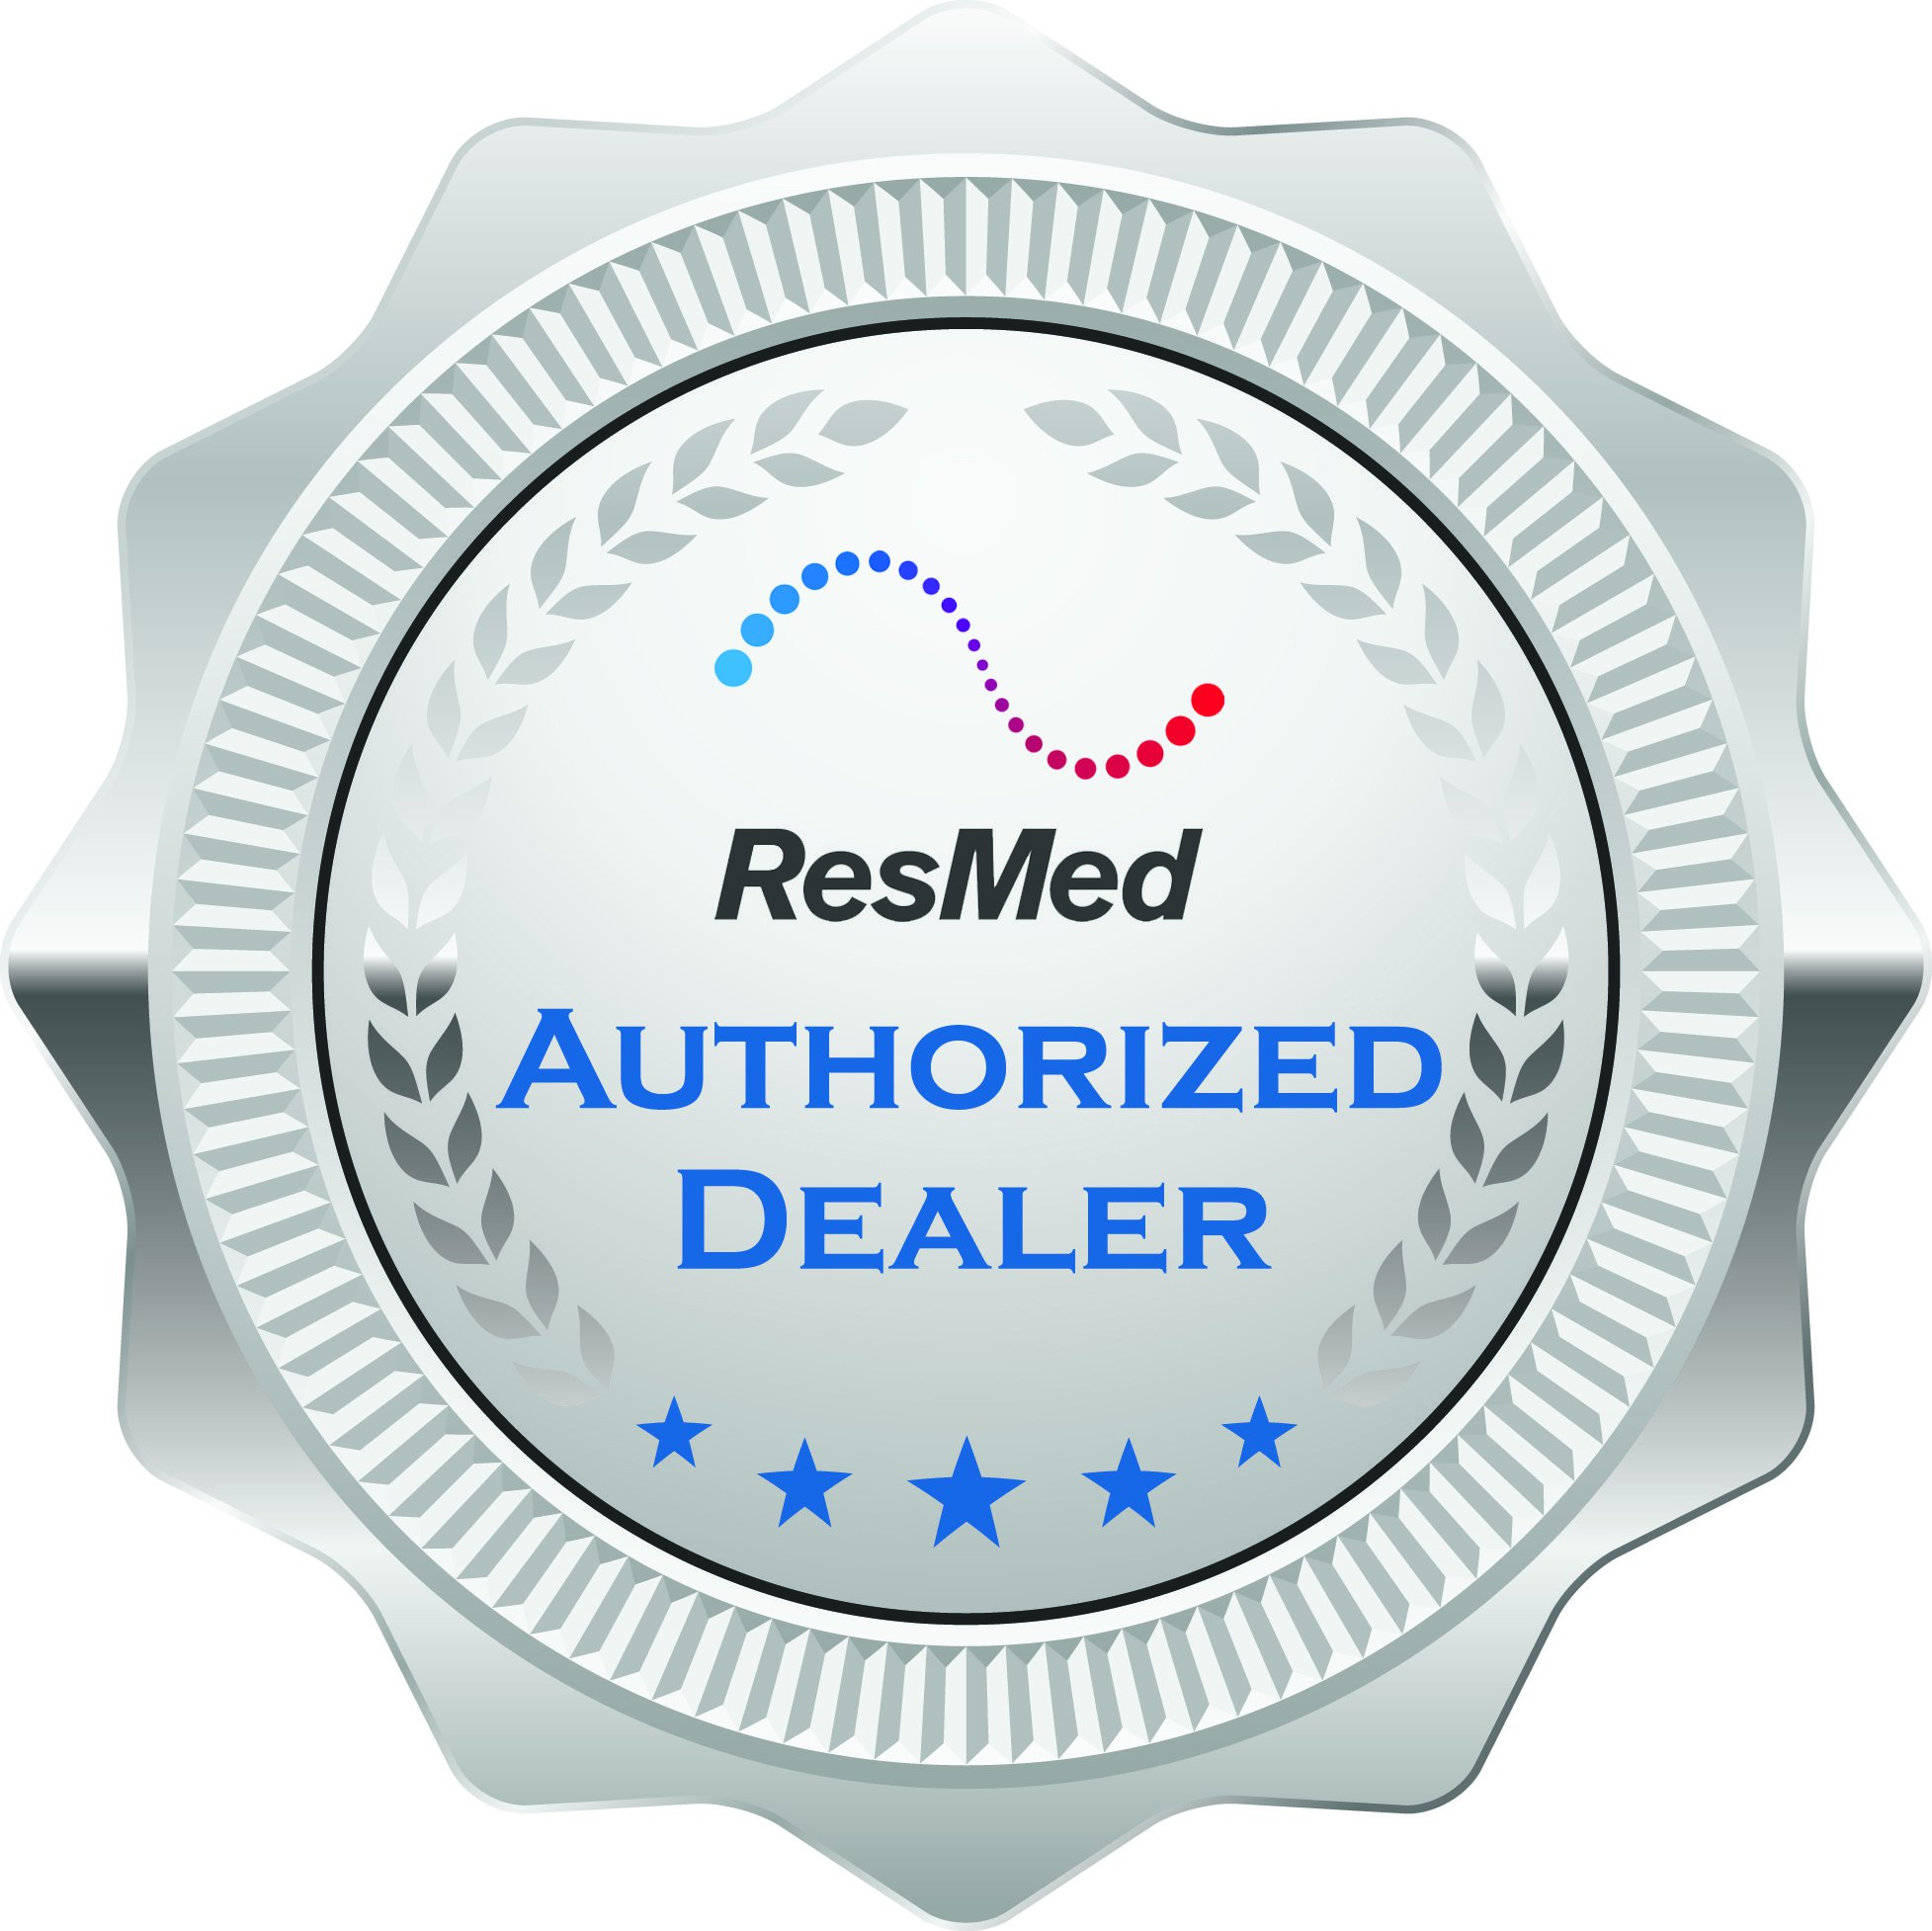 ResMed Authorized Dealer